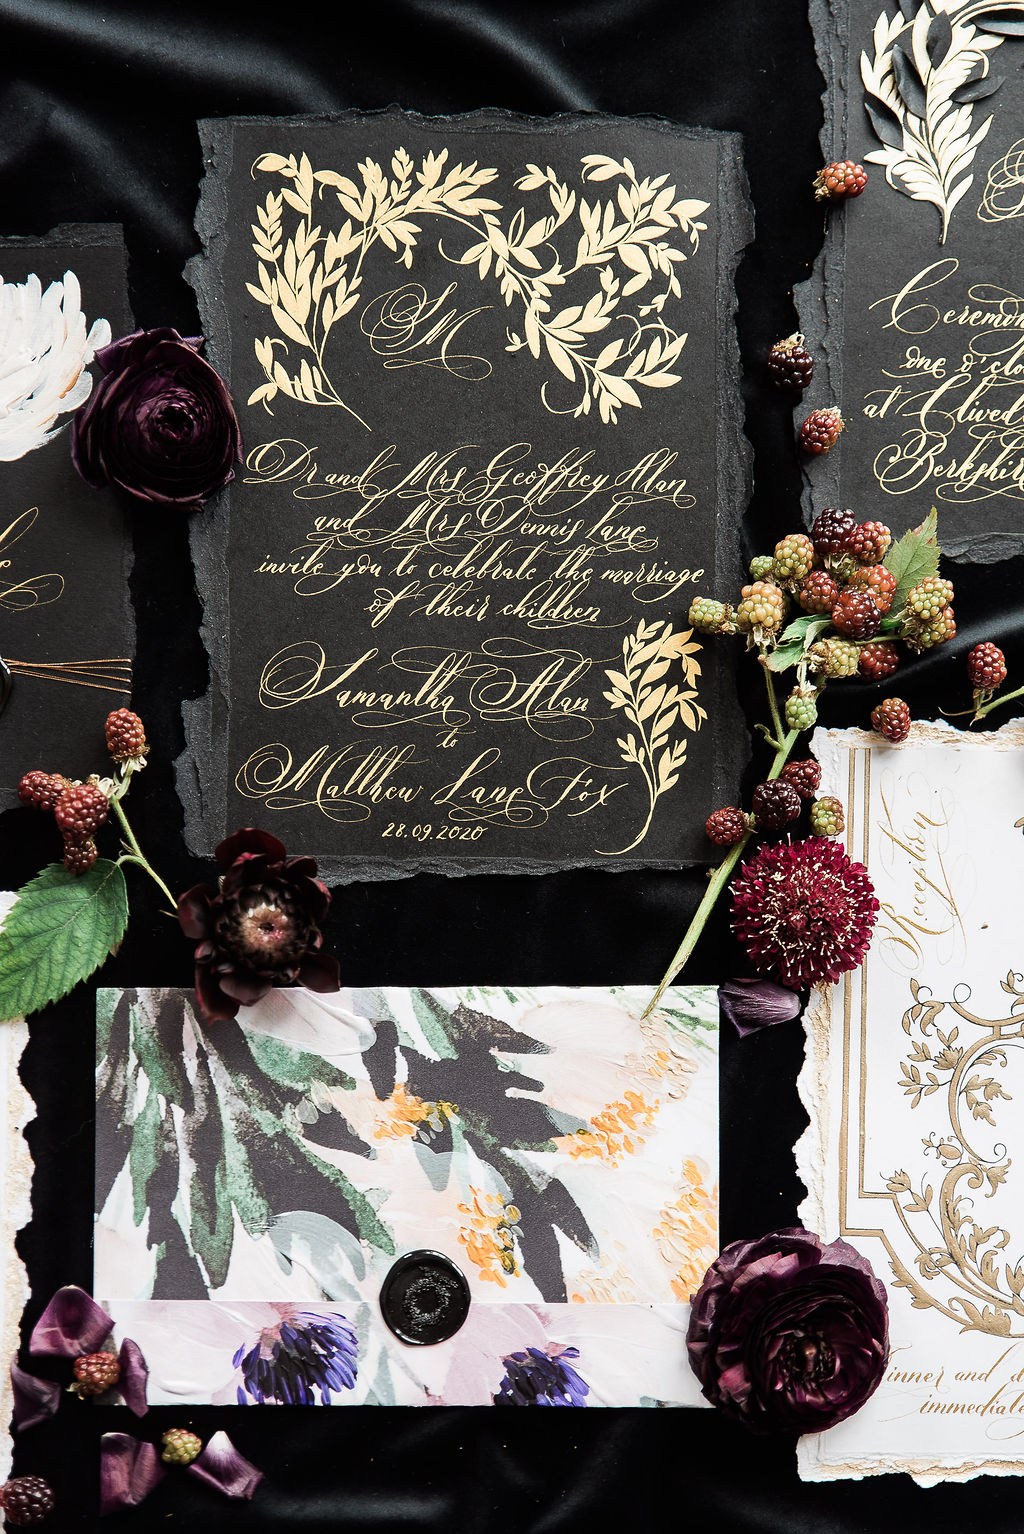 French style wedding invitations with classical modern calligraphy